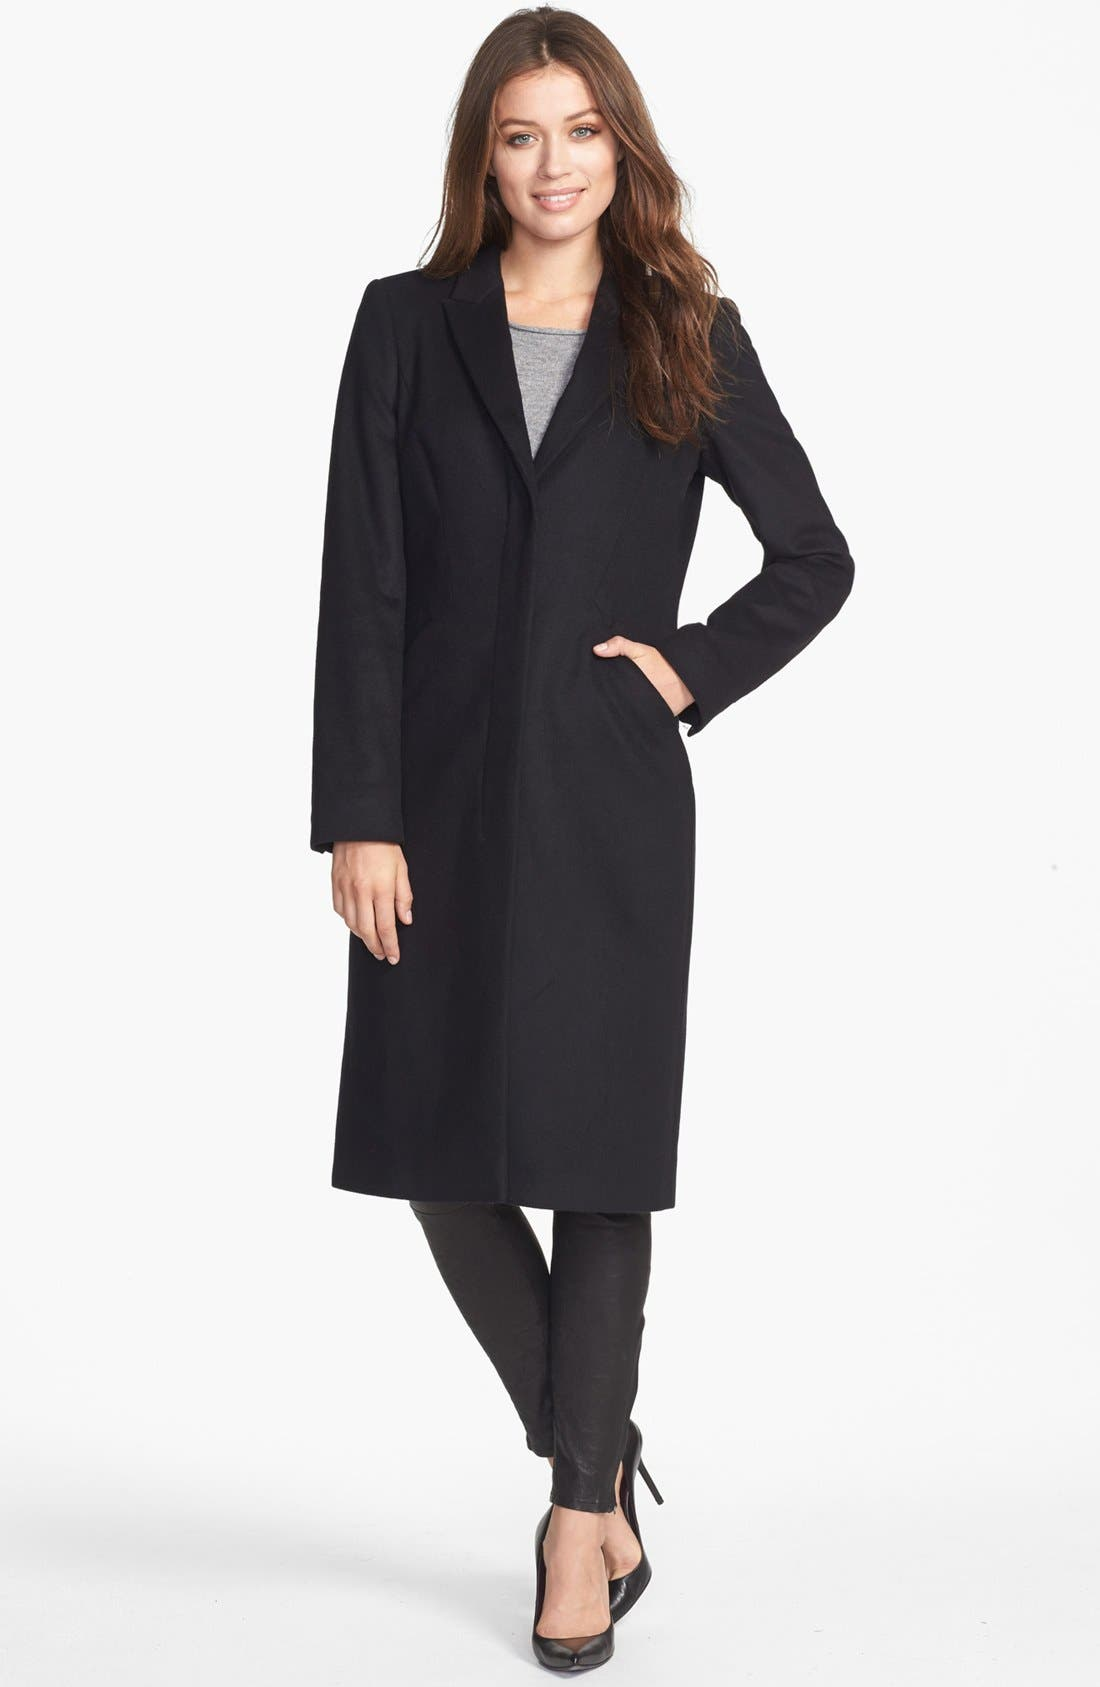 Alternate Image 1 Selected - BOSS HUGO BOSS 'Cavella' Wool & Cashmere Coat